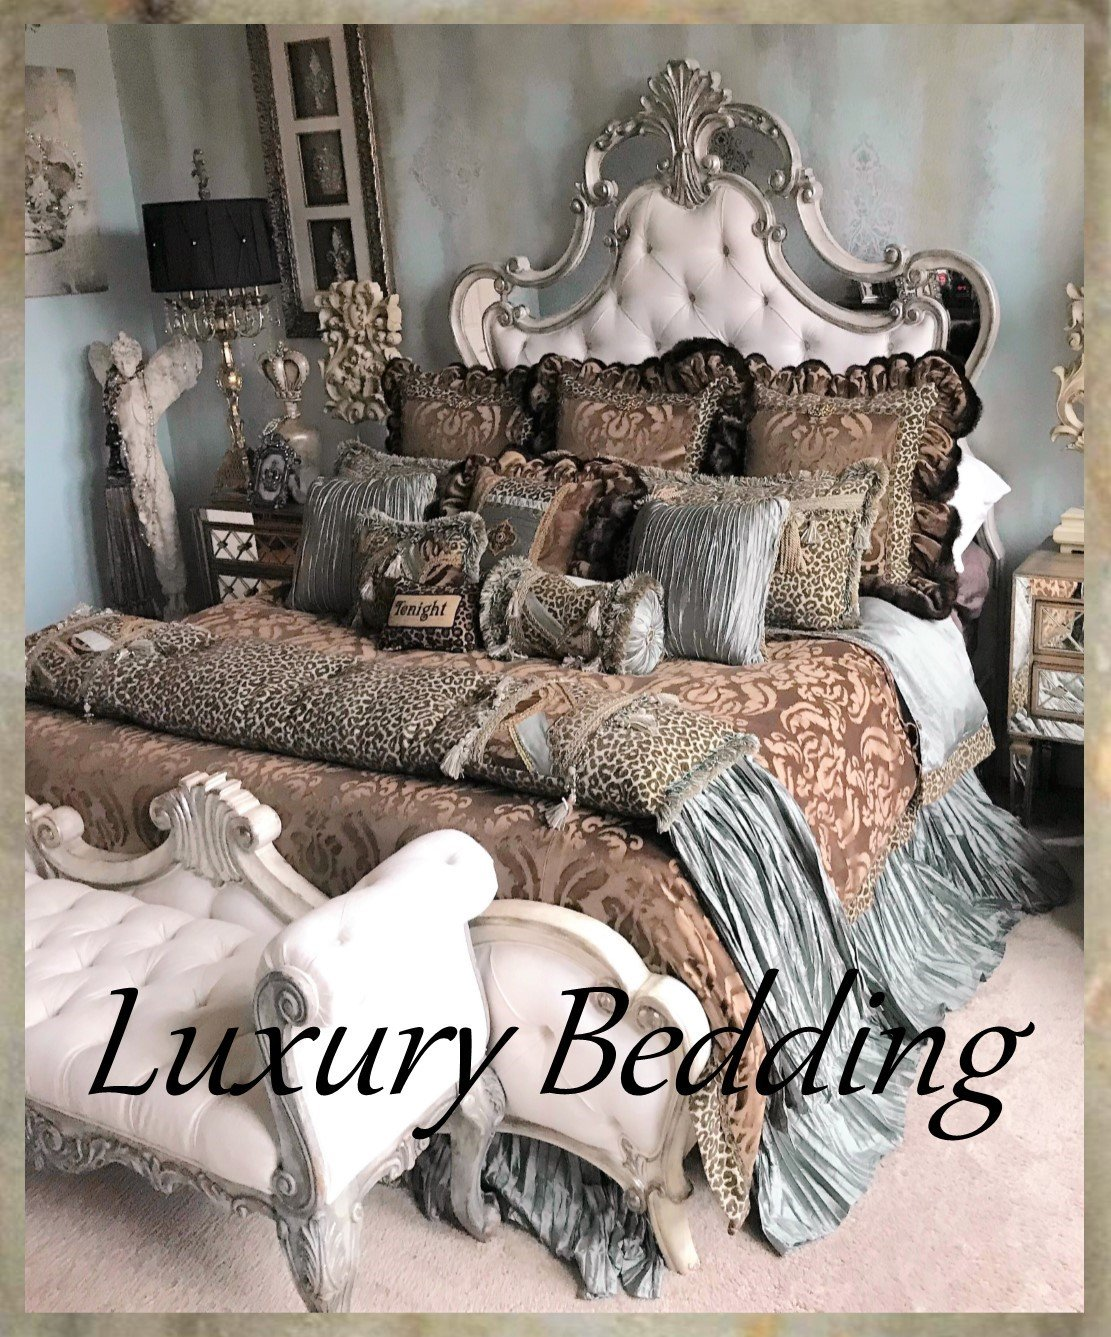 Designer_bedding-luxury_bedding-old_world_bedding-over_sized_bedding-reilly_chance_collection